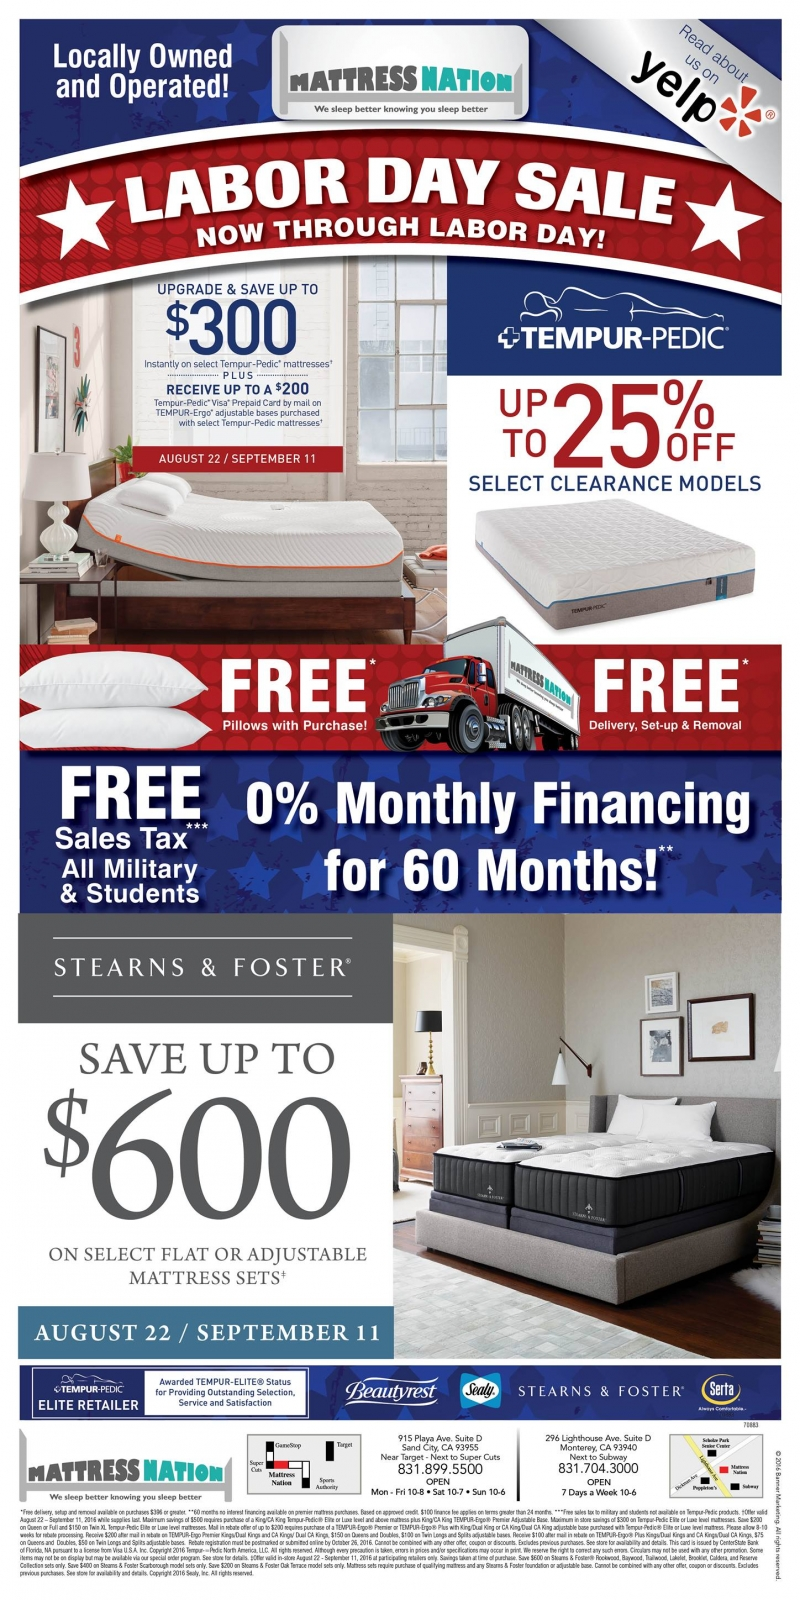 Mattress Nation Labor Day Sale 2016   Lighthouse District